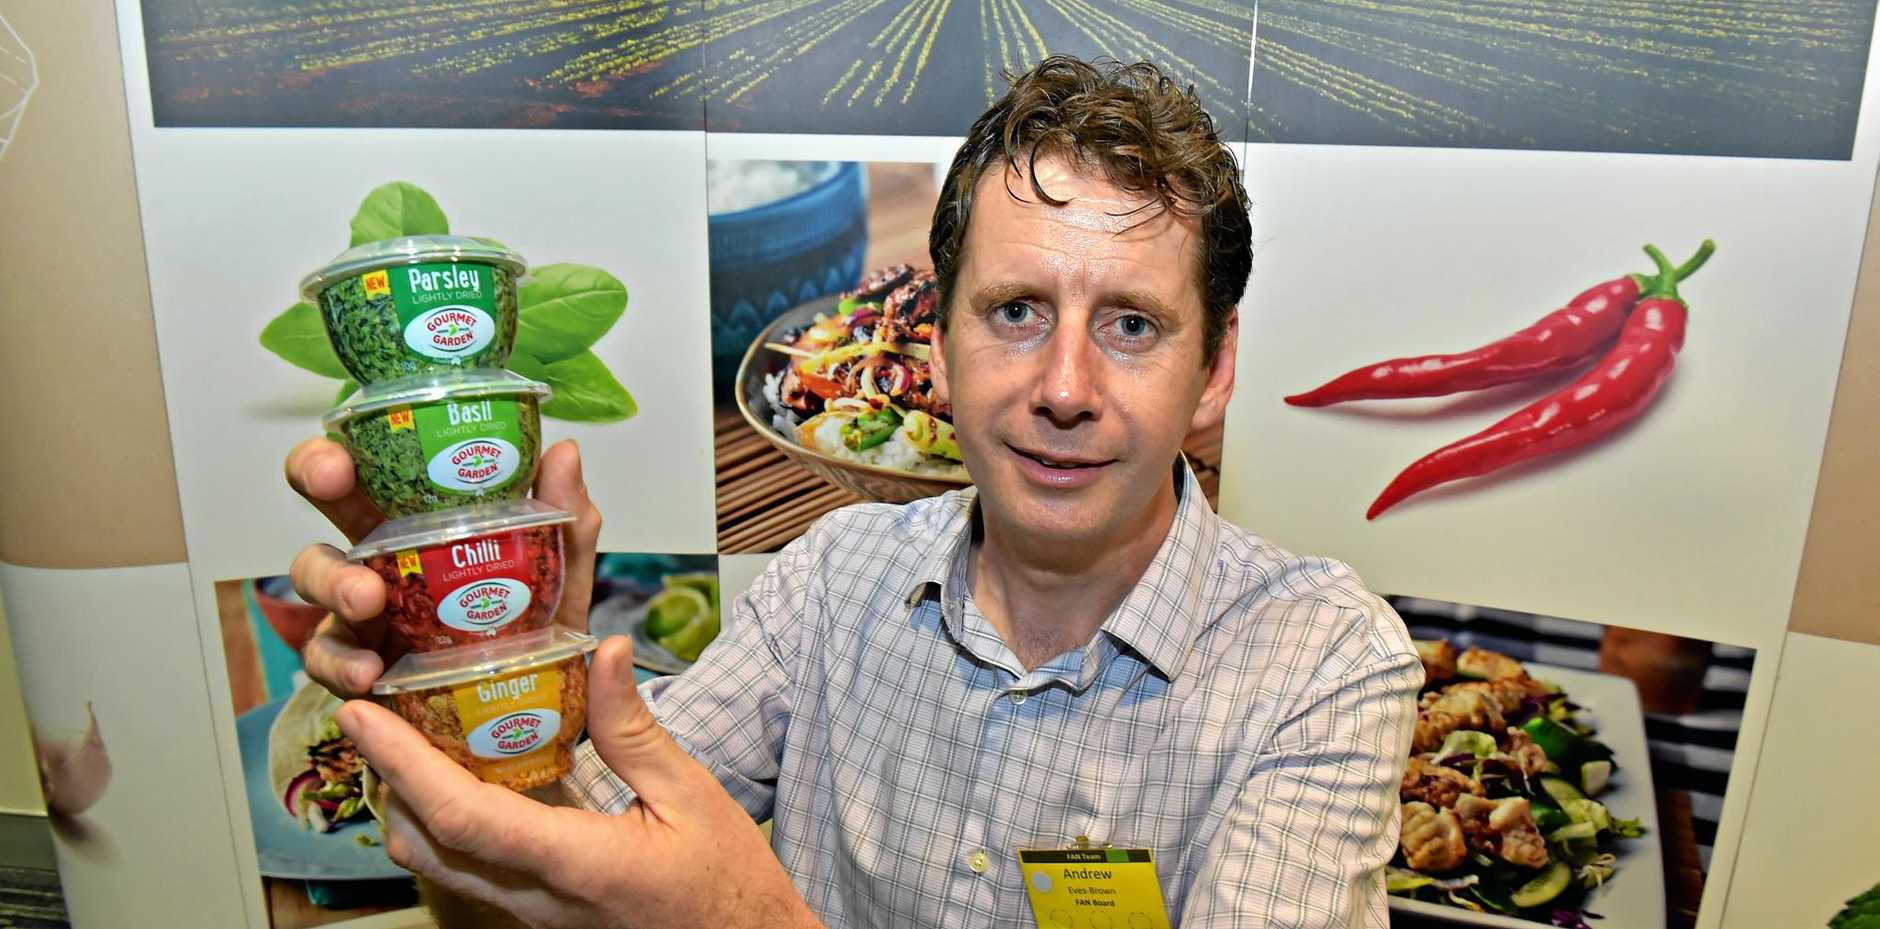 Gourmet Garden chief operating officer and FAN chairman Andrew Eves-Brown says the decision to be made on a Yandina development proposal has huge ramifications for the region.